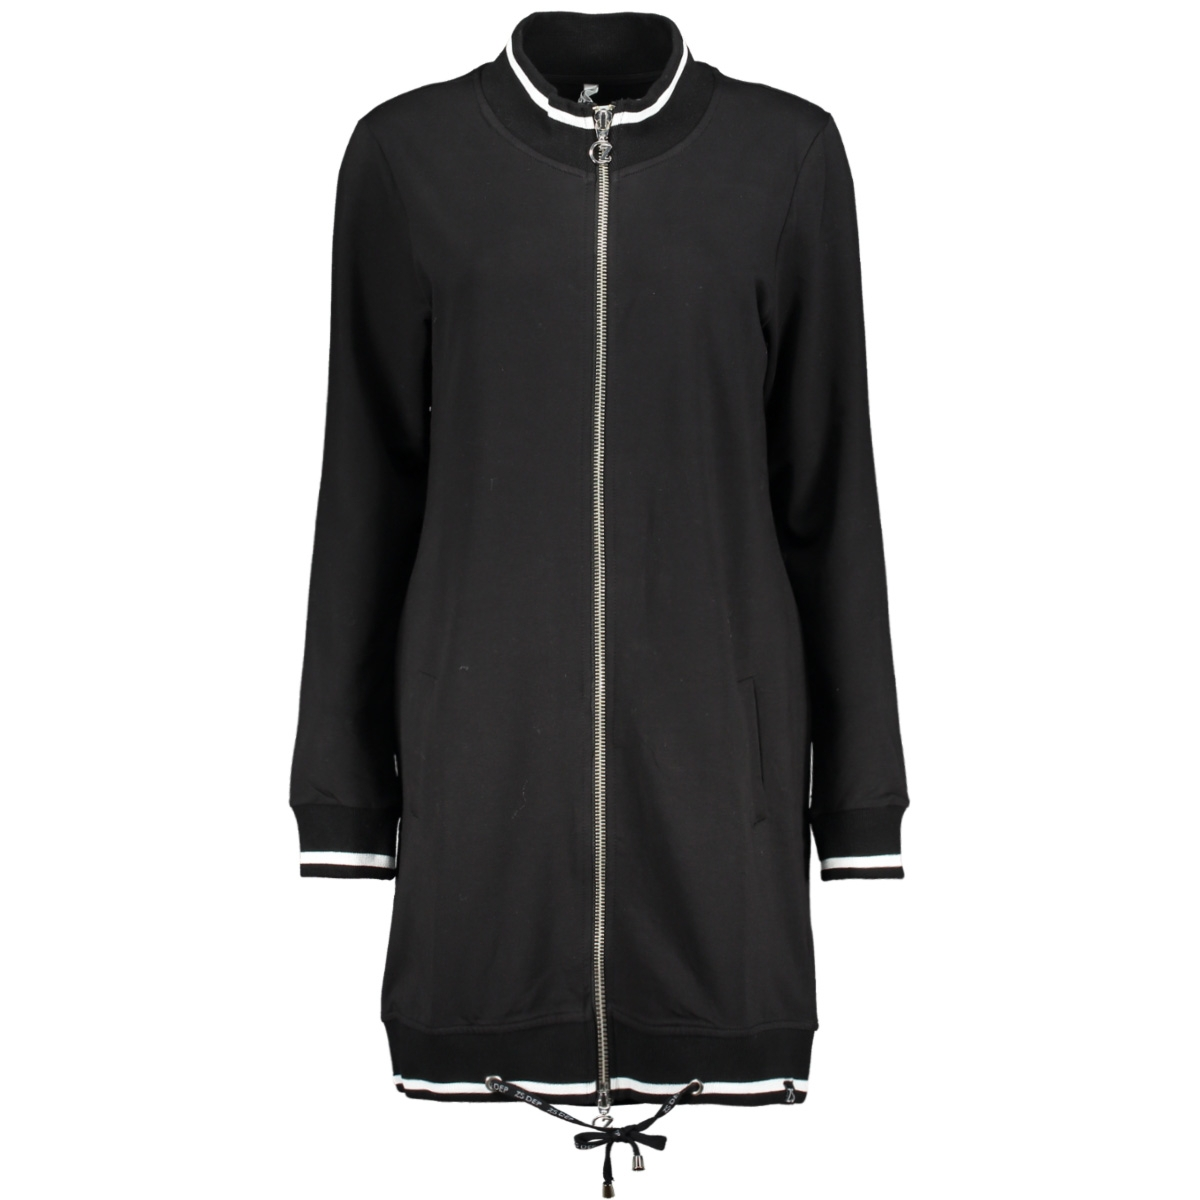 mees 2 sporty cardigan zoso vest black/ off white